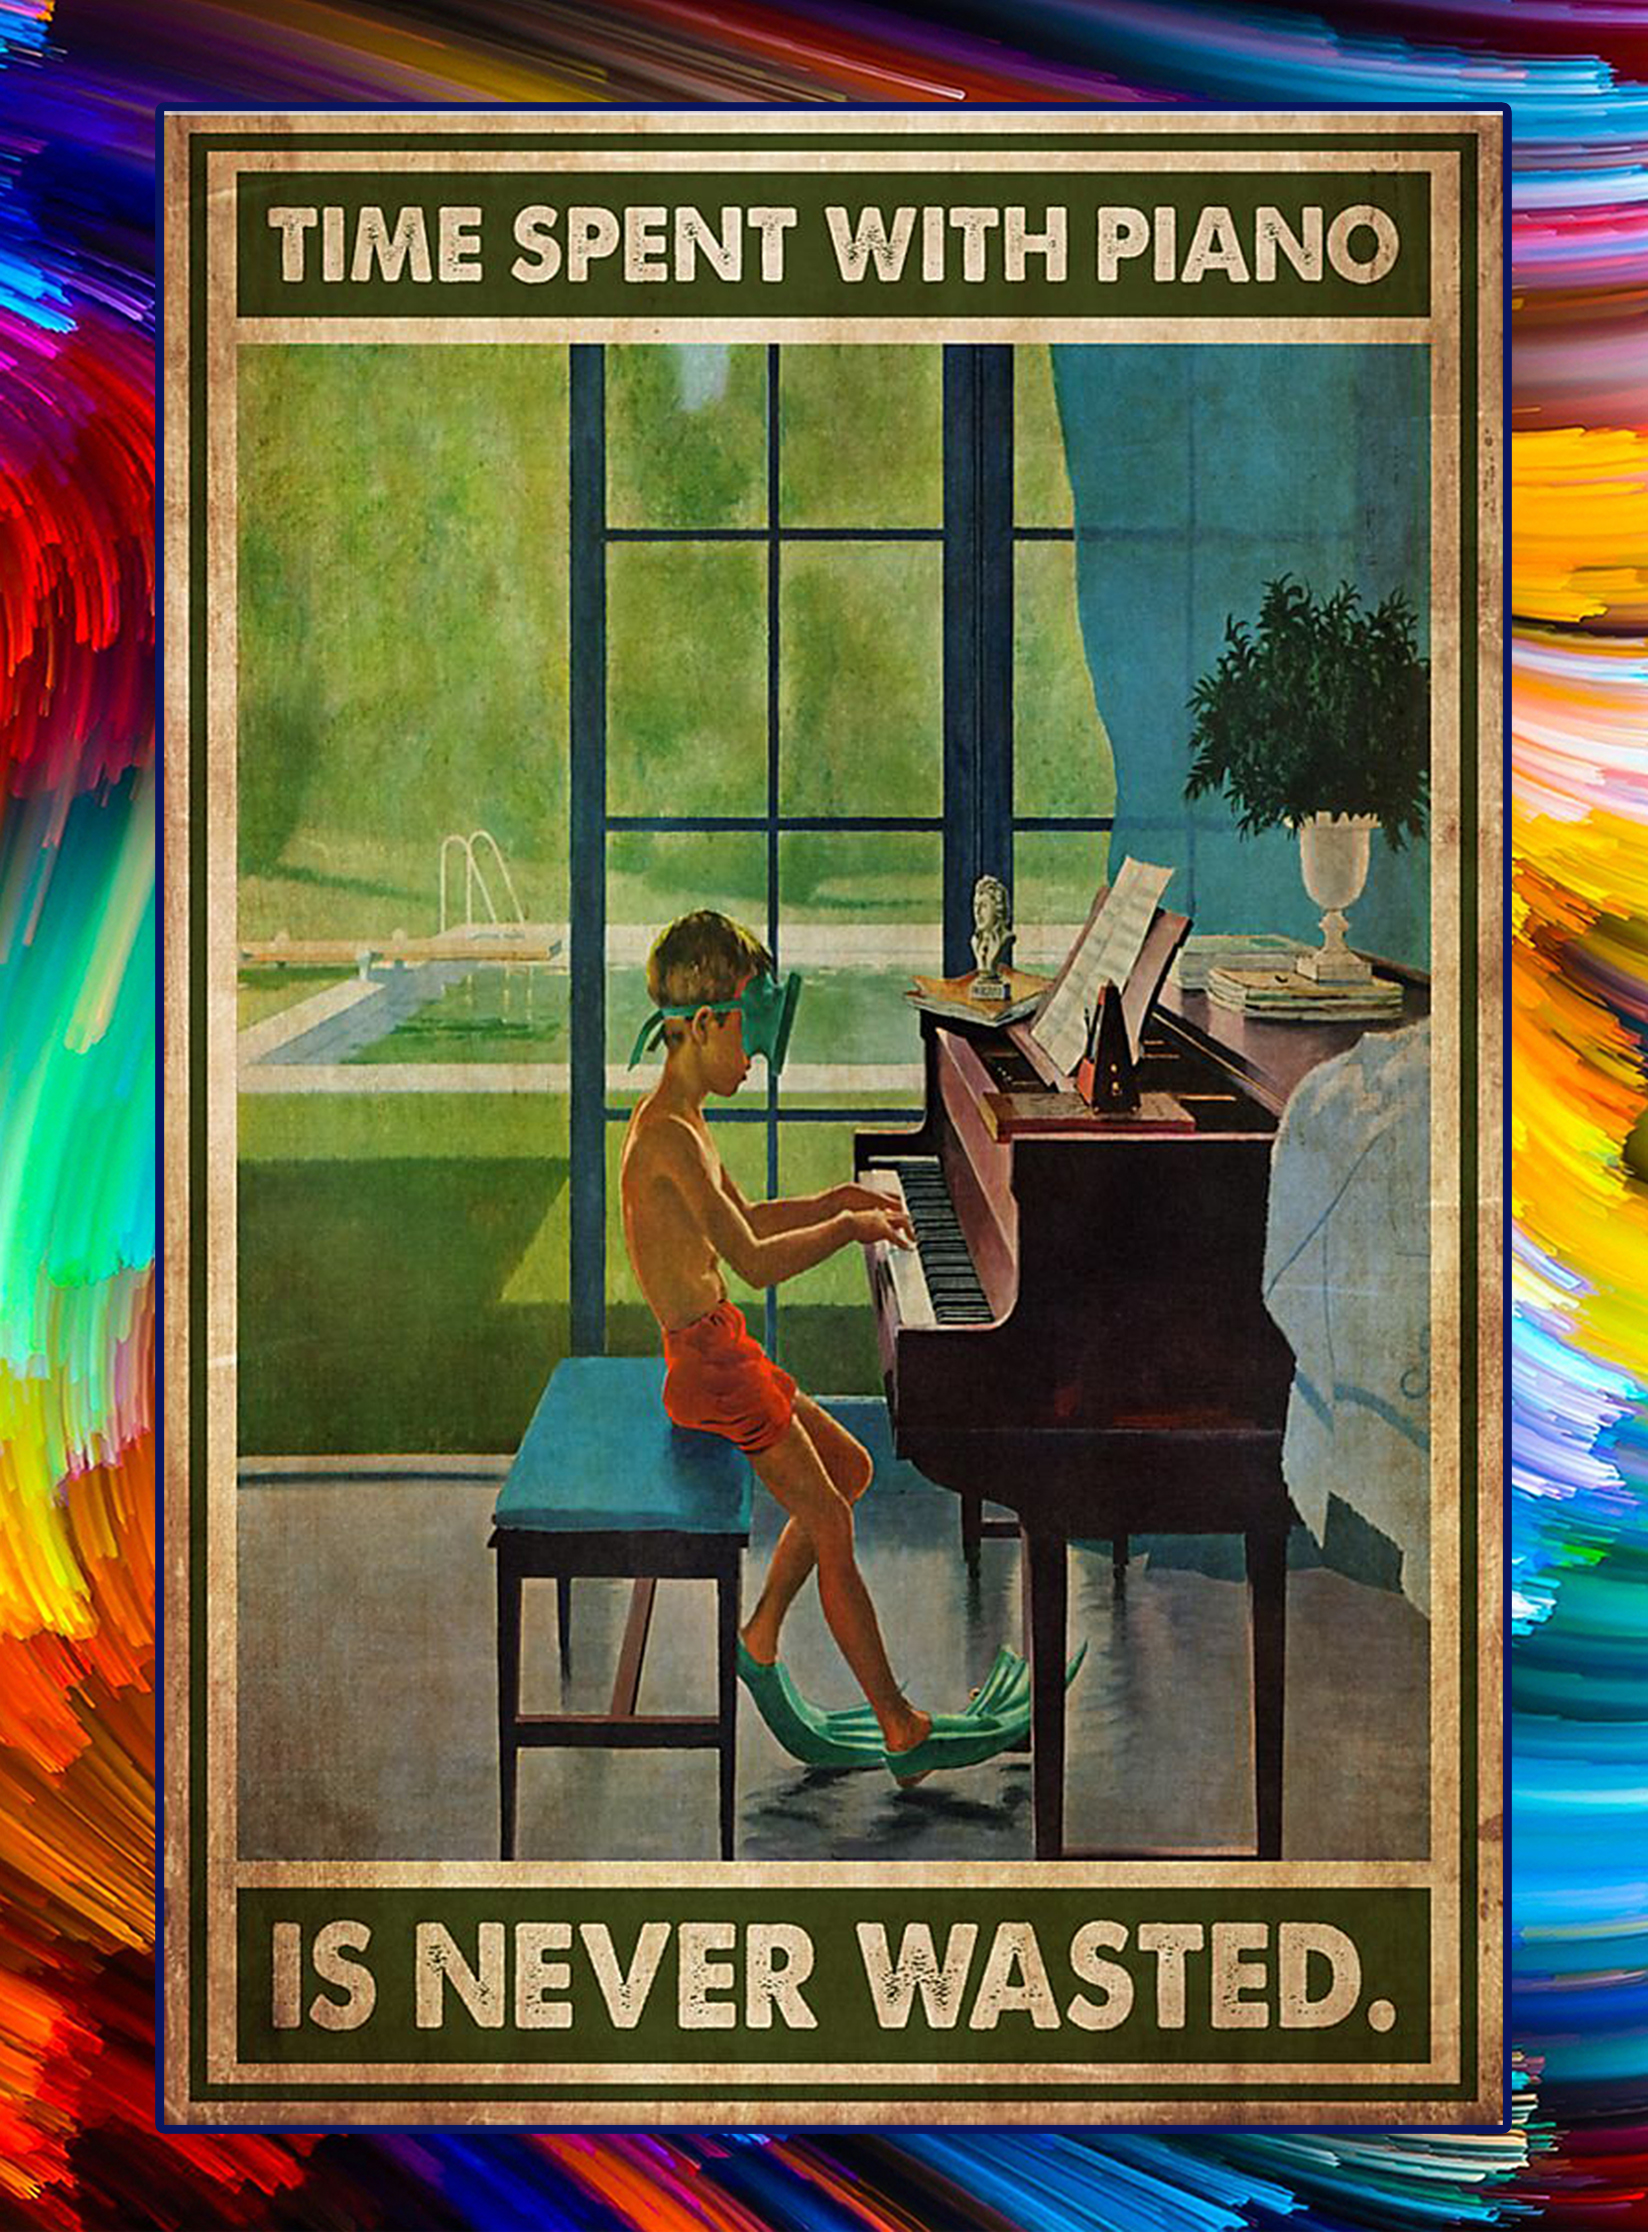 Time spent with piano is never wasted poster - A2